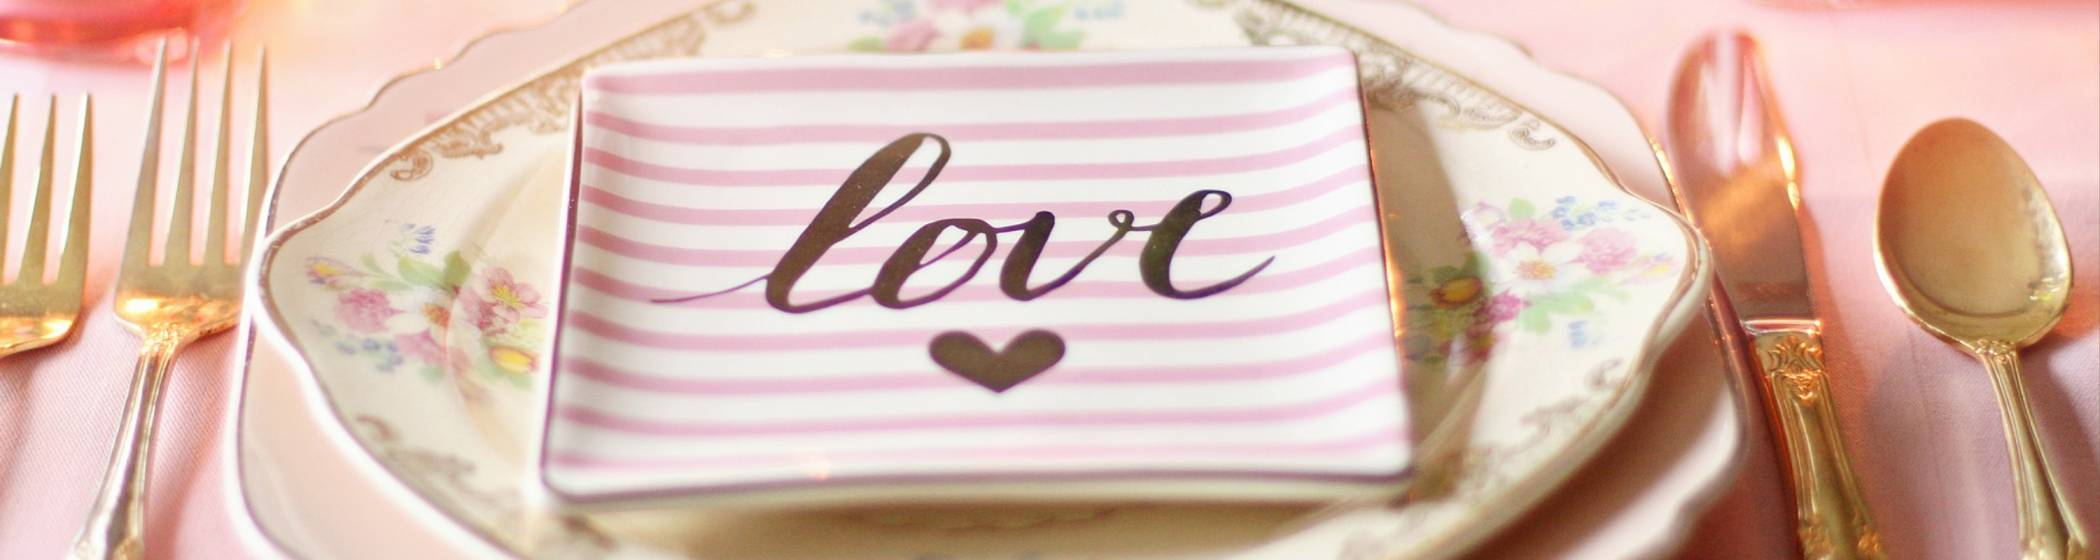 Plates with love written on